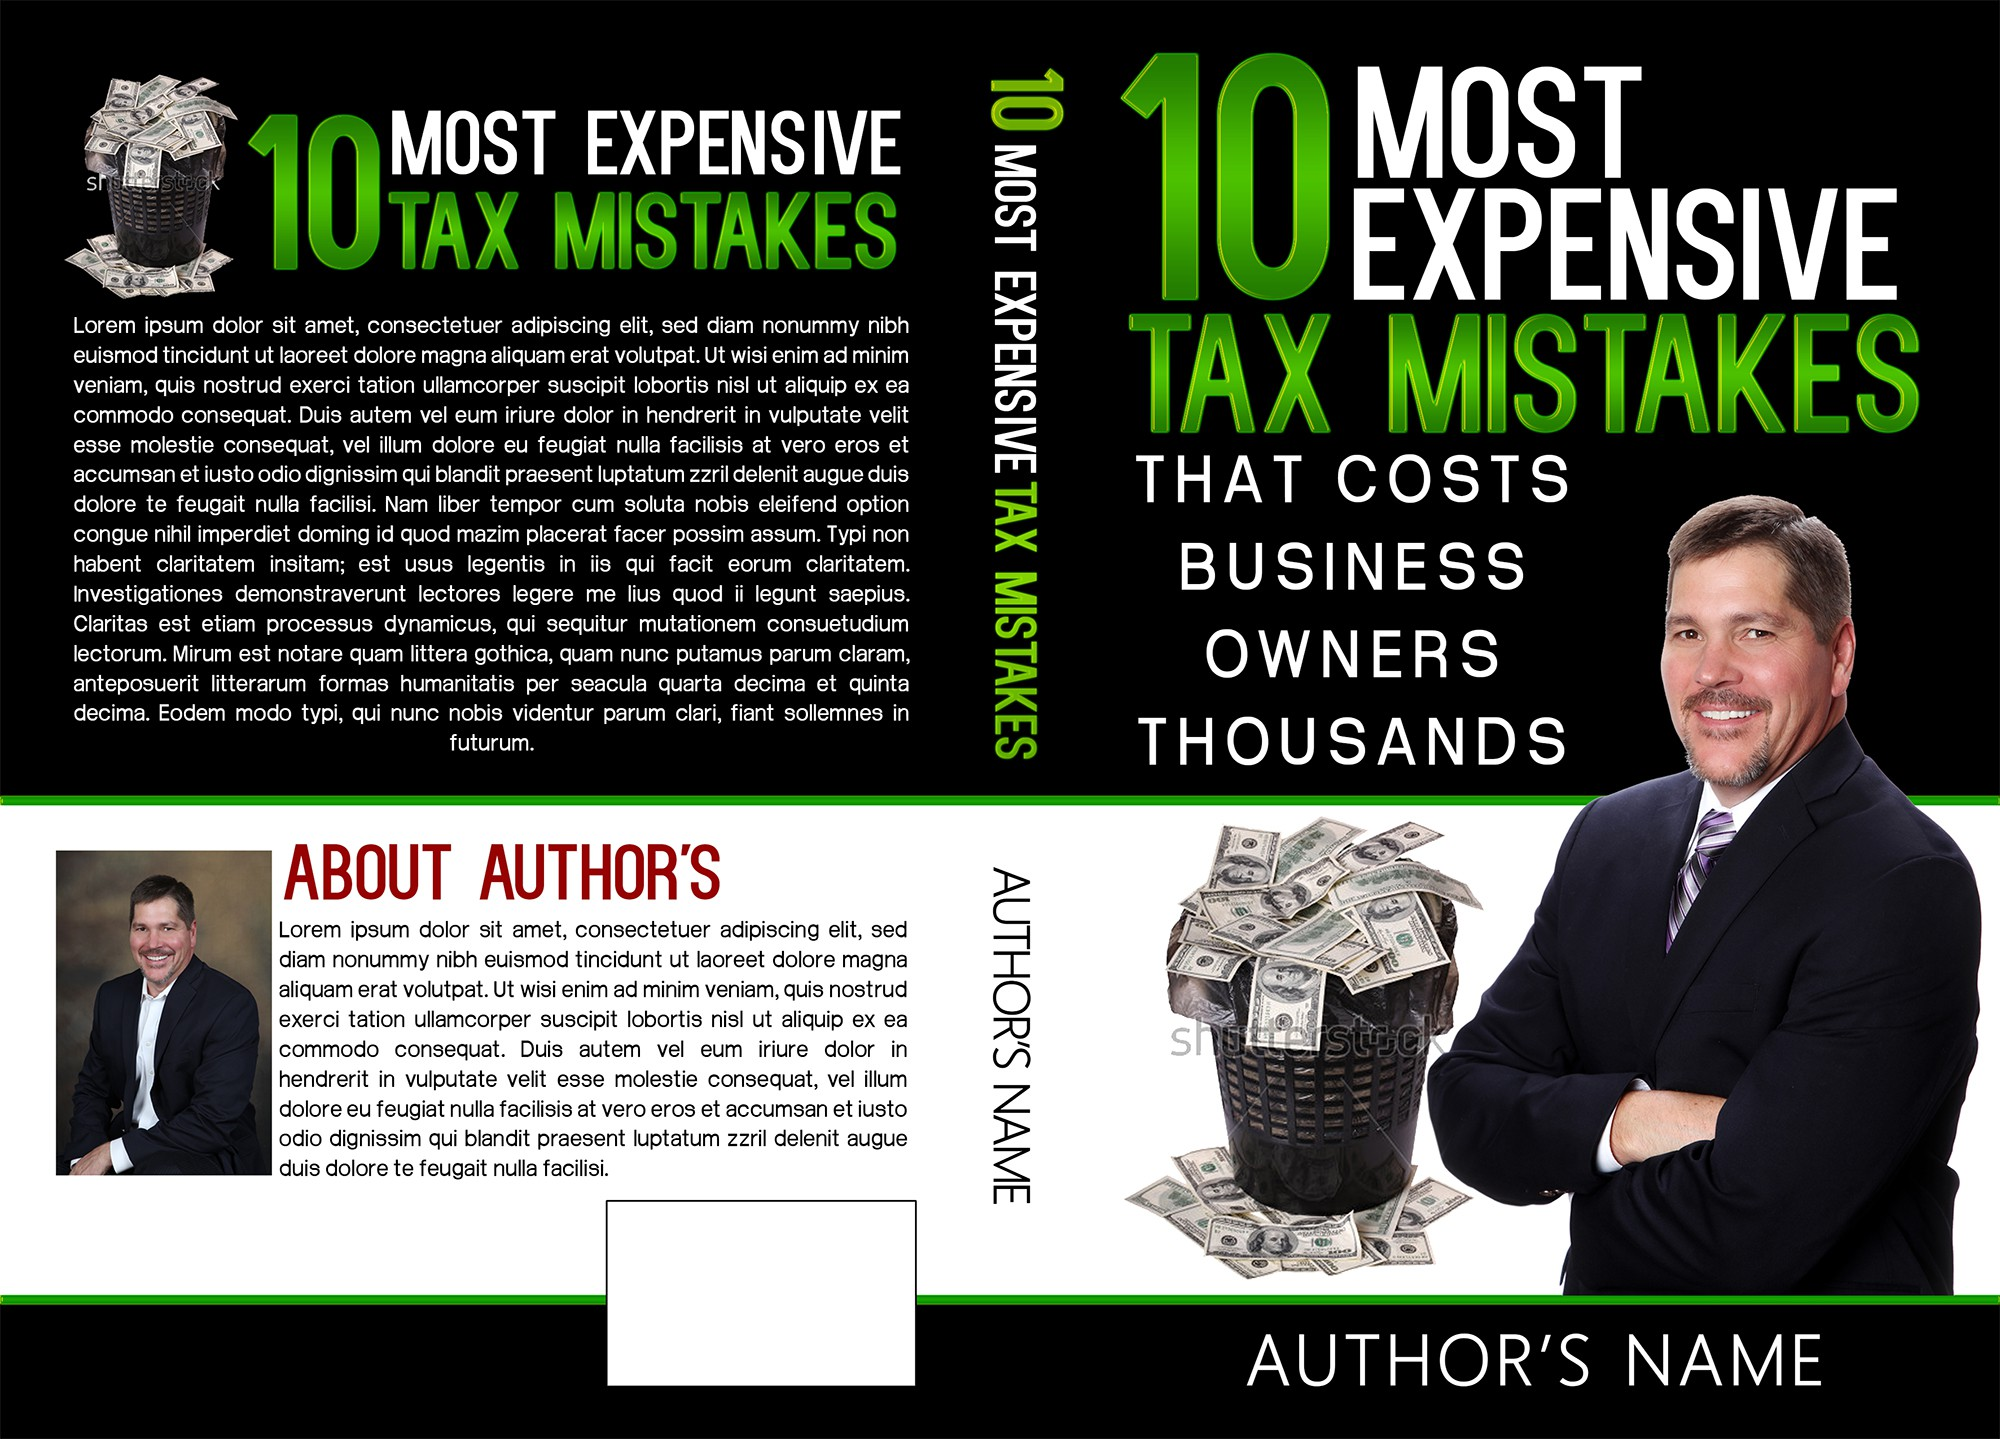 Create a a cover to be giving away letting biz owners realize they are overpaying their taxes